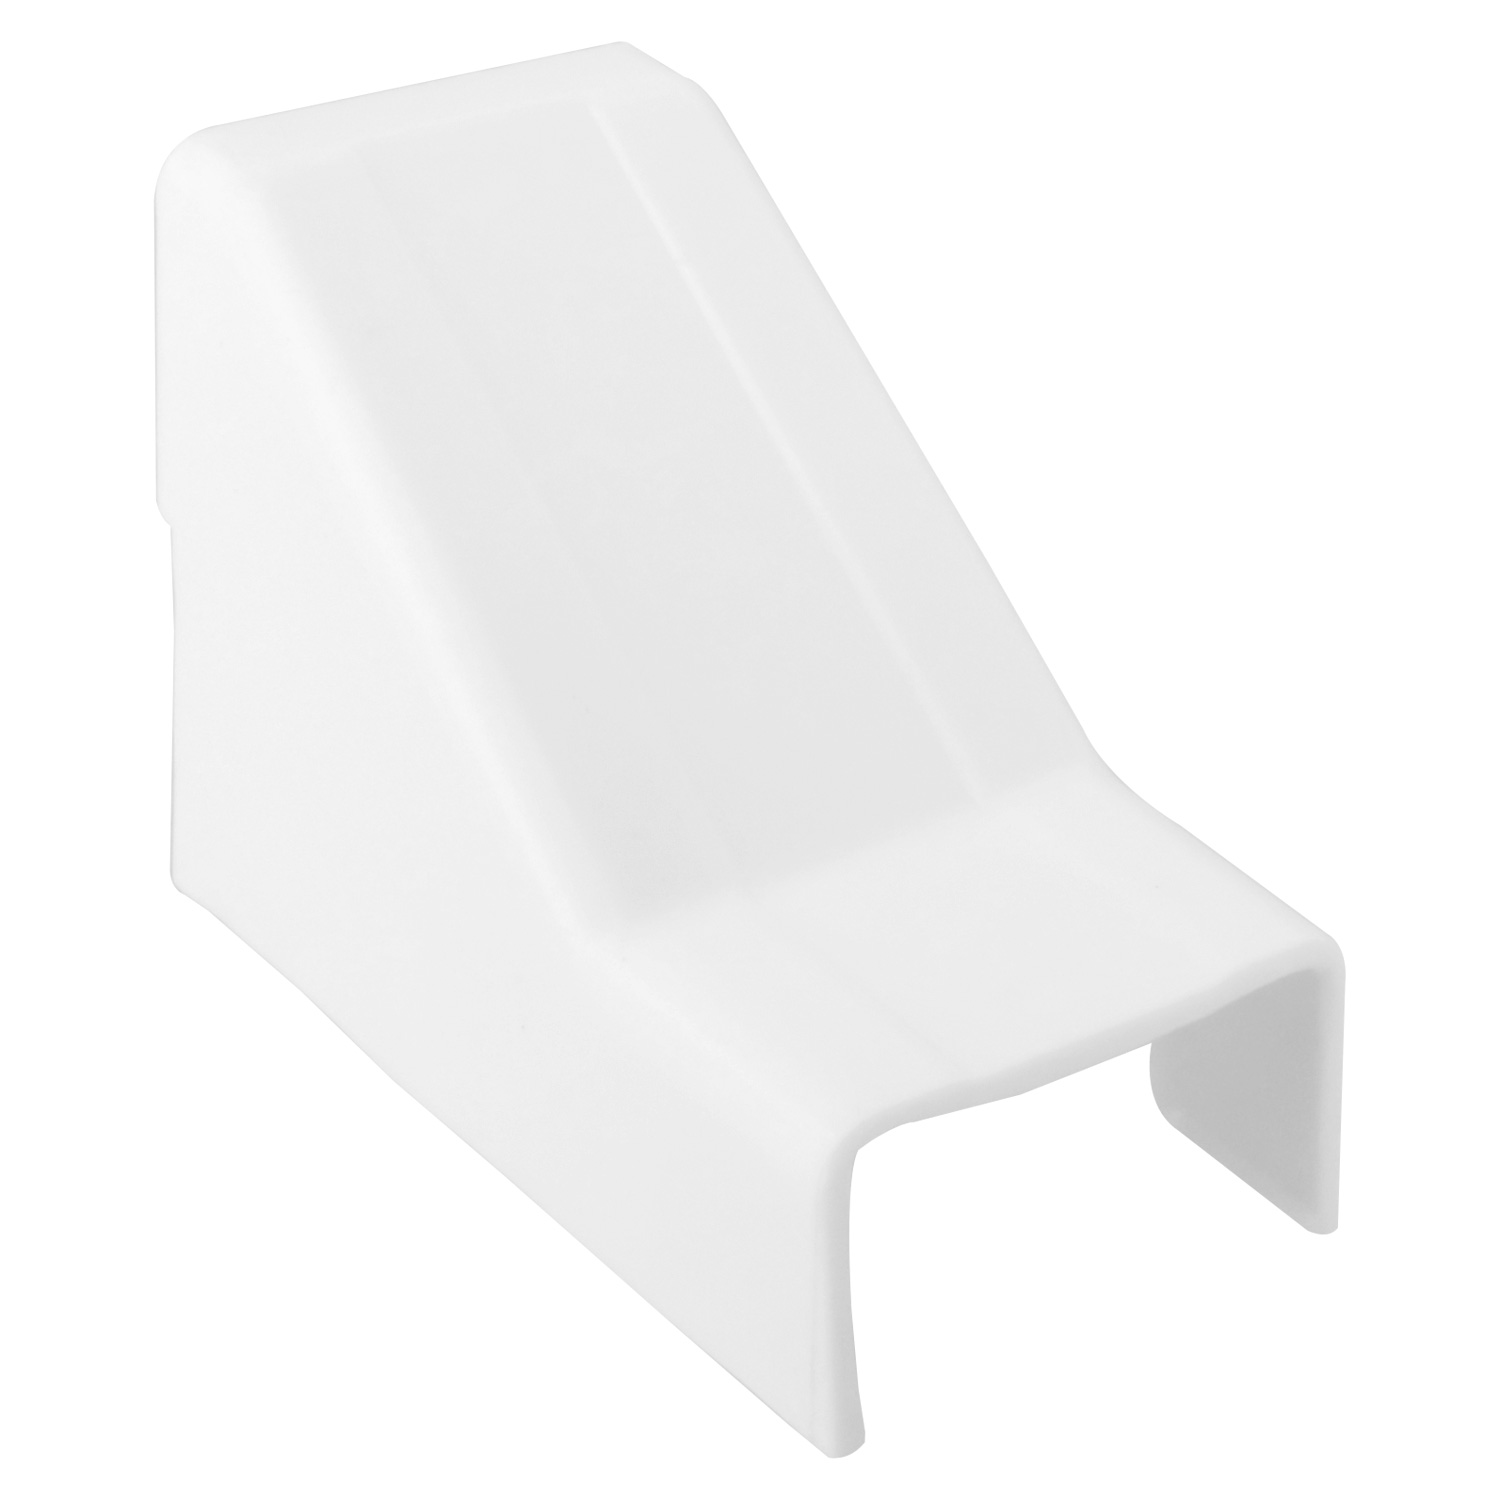 1-1/4 inch Ceiling Entry for Raceway - White, 5pcs/pack